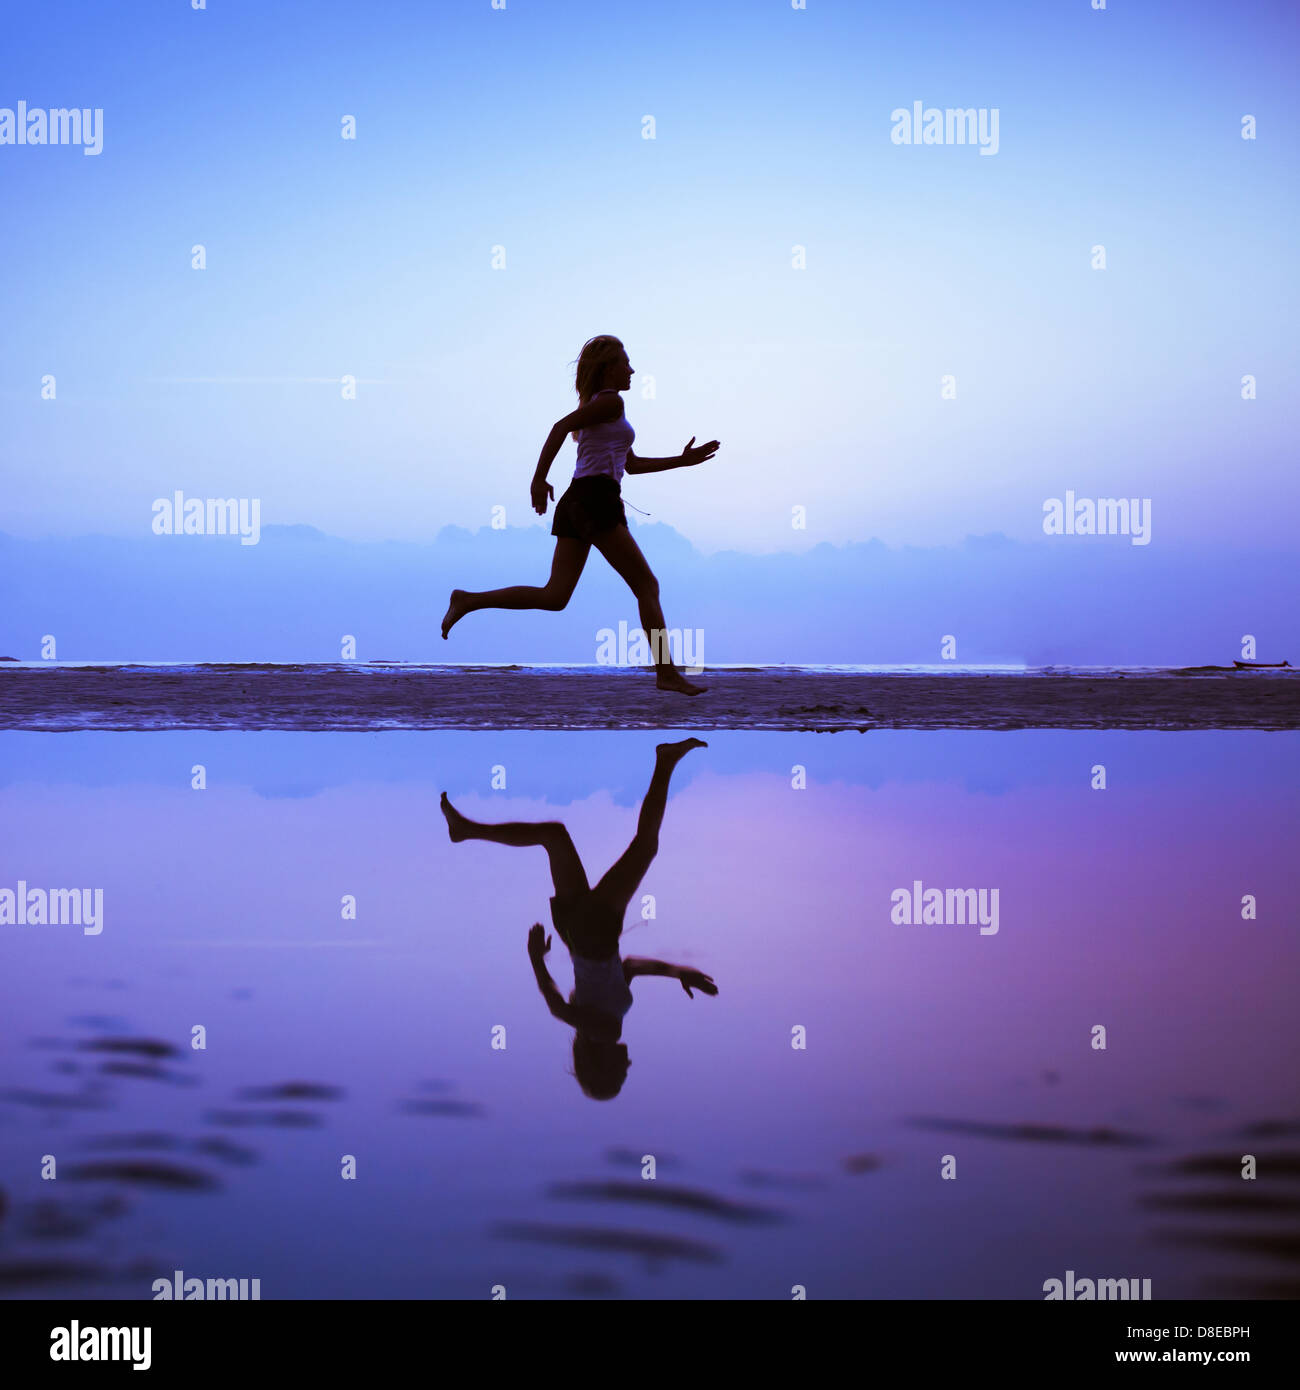 Female runner silhouette is mirrored below with a blue sunset sky as background - Stock Image